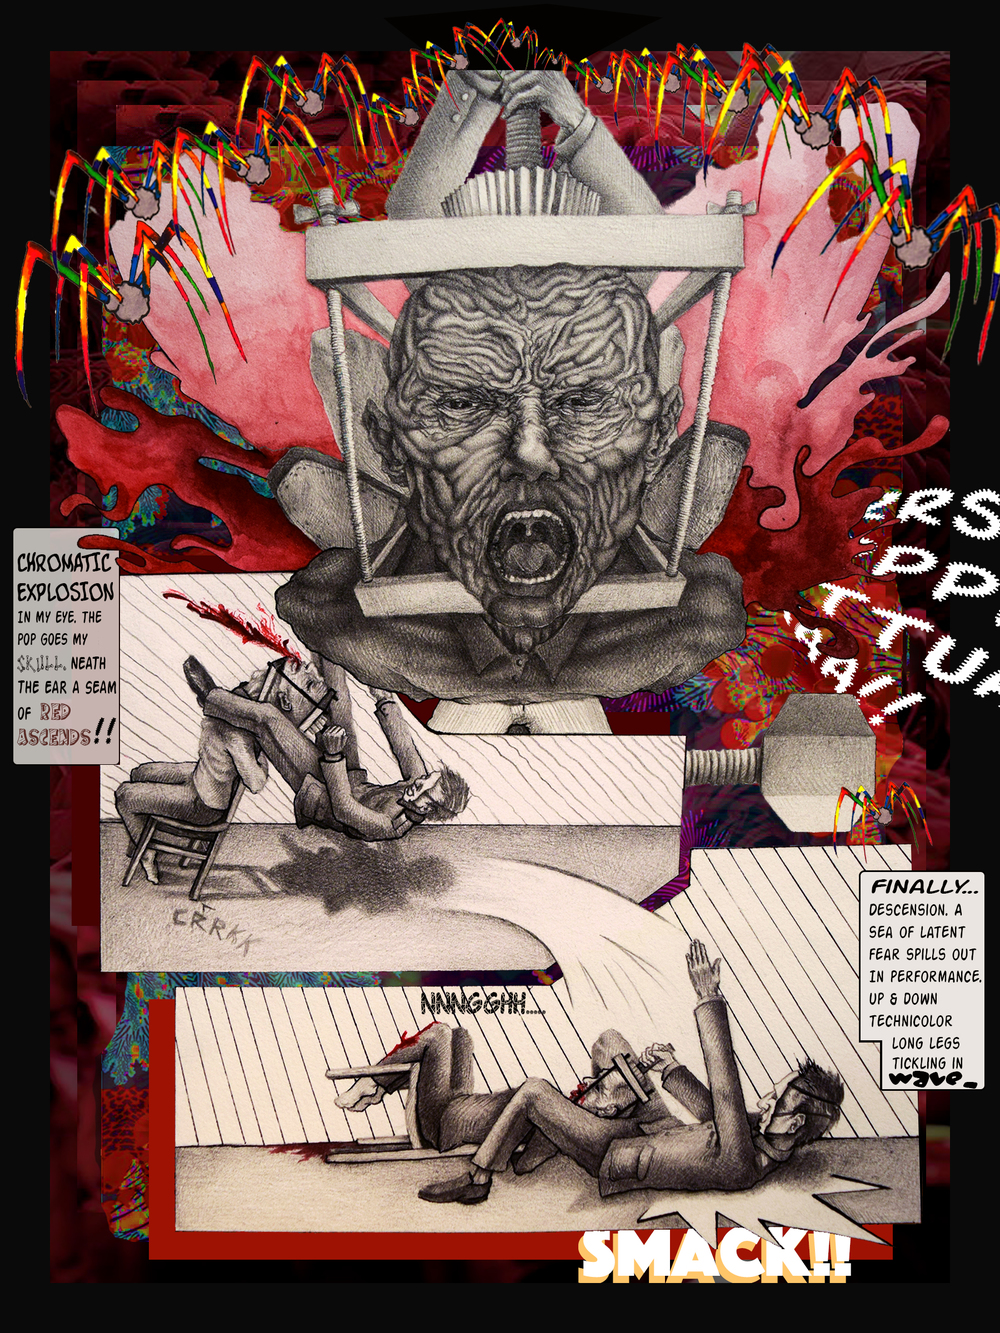 PAGE 5 OF TSARDOM COMIC BOOK. MIXED MEDIA, 2016.